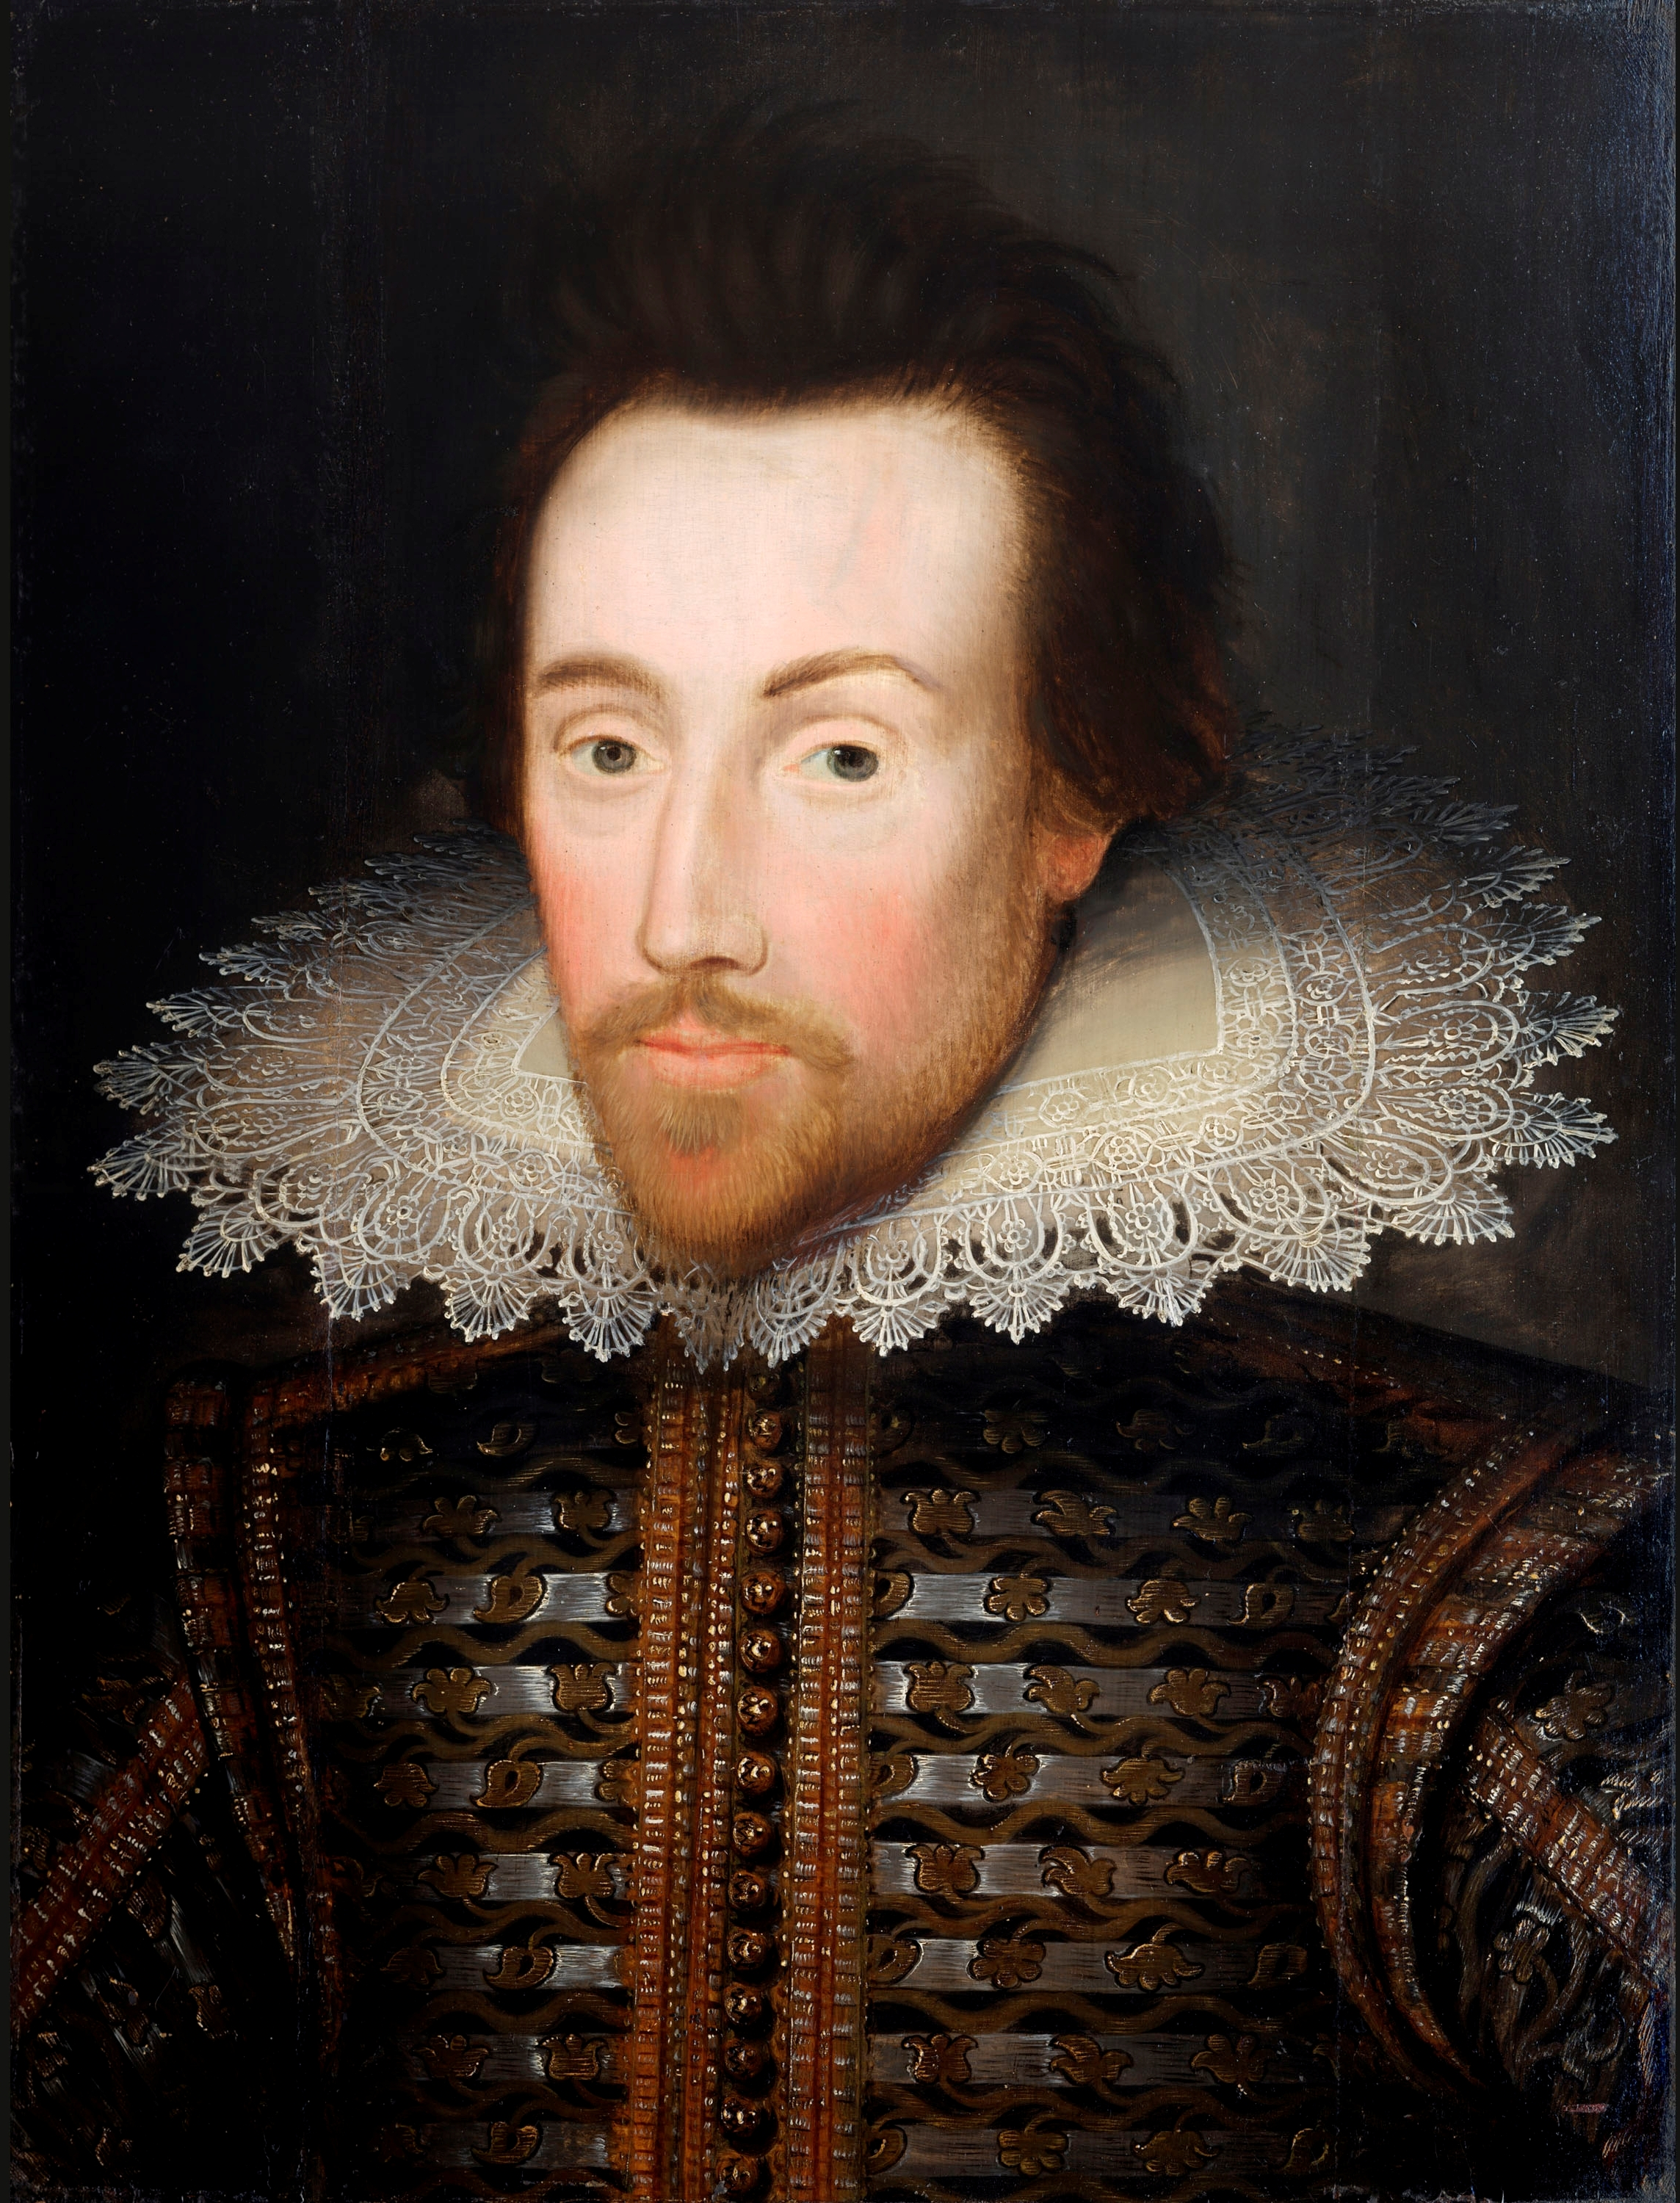 Portrait owned by The Shakespeare Birthplace Trust.